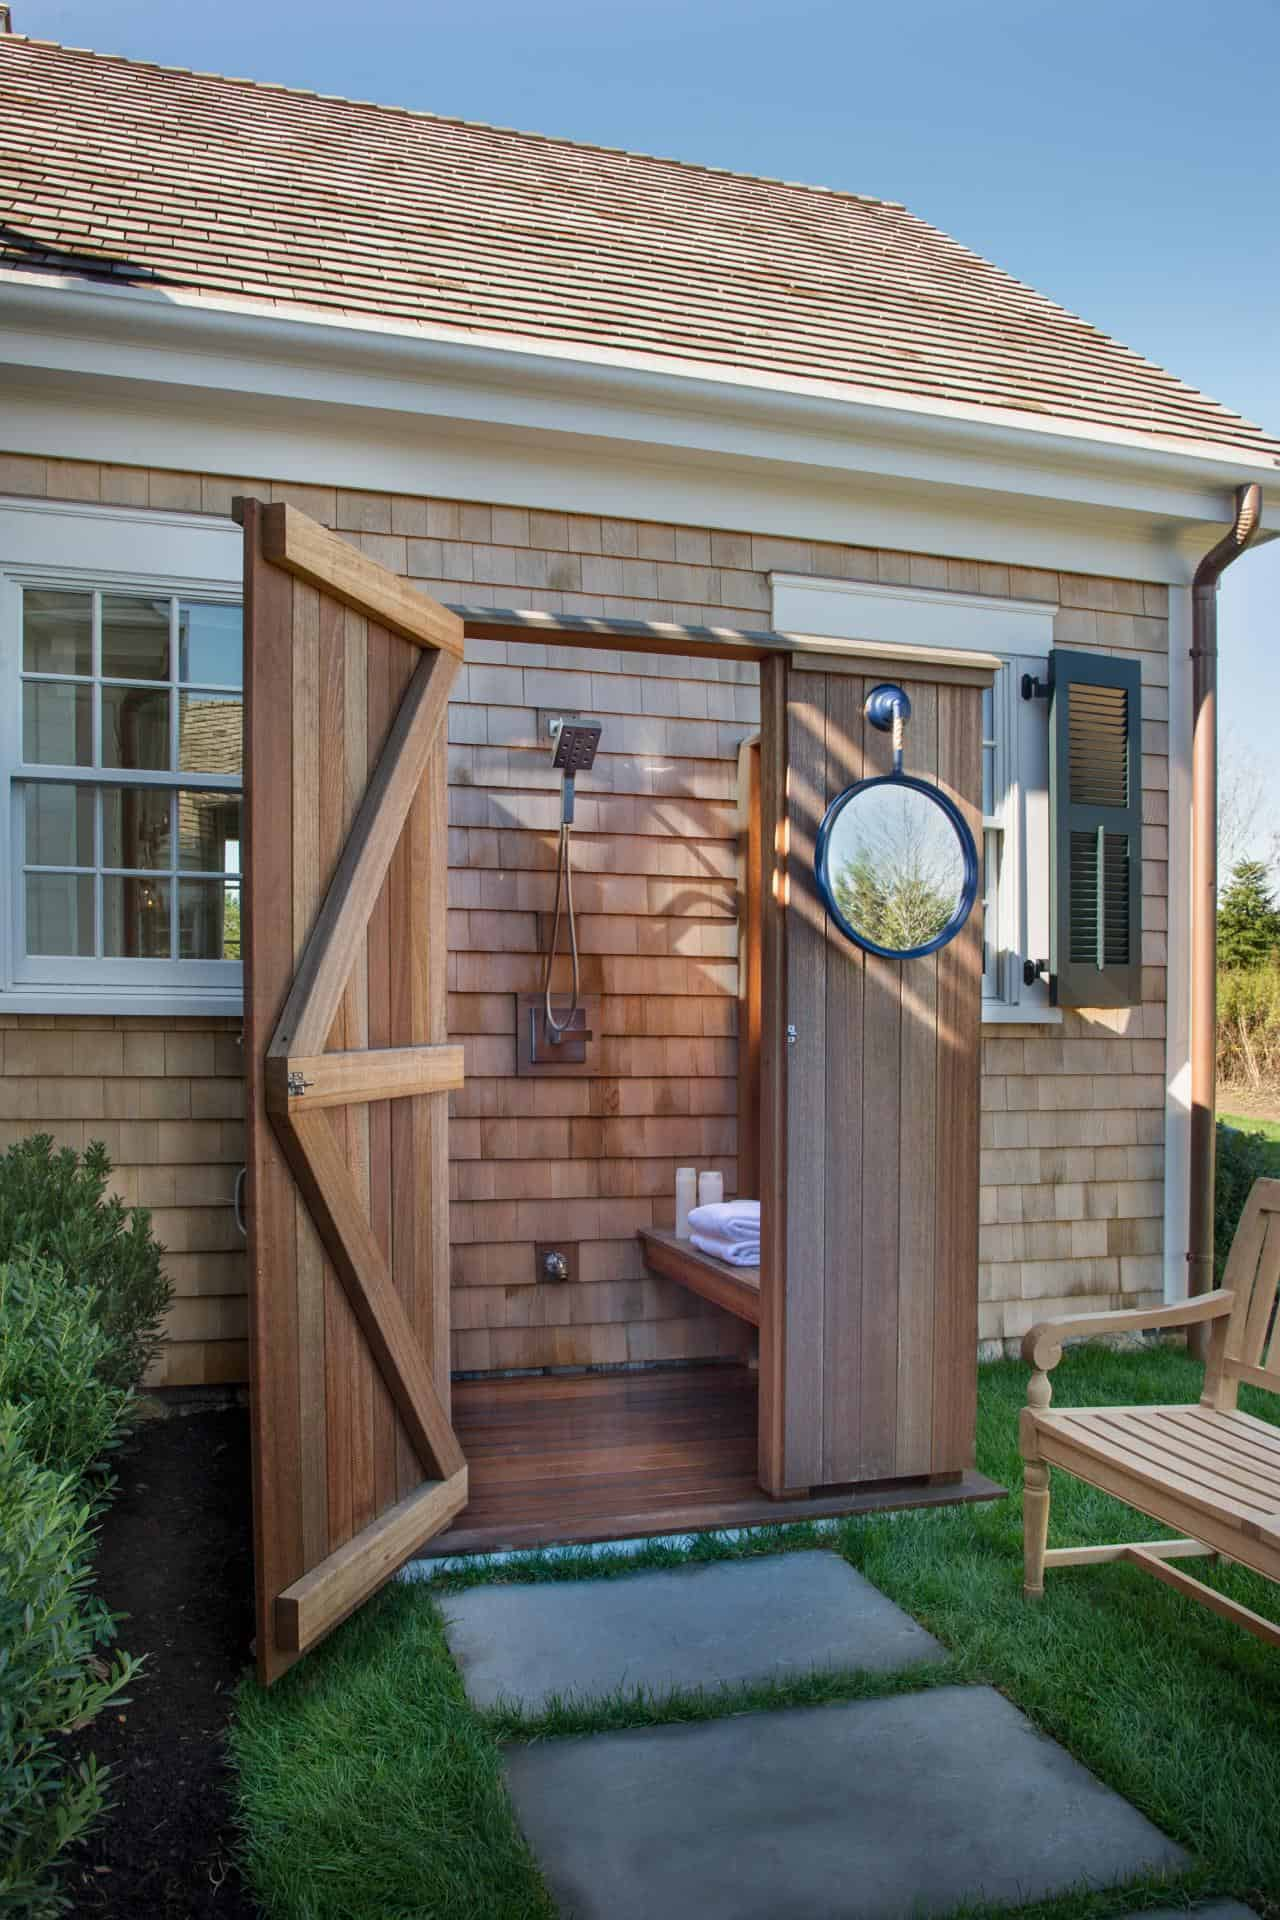 10 Simple Decorating Ideas from the HGTV Dream Home ... on Dream Backyard Ideas id=89323